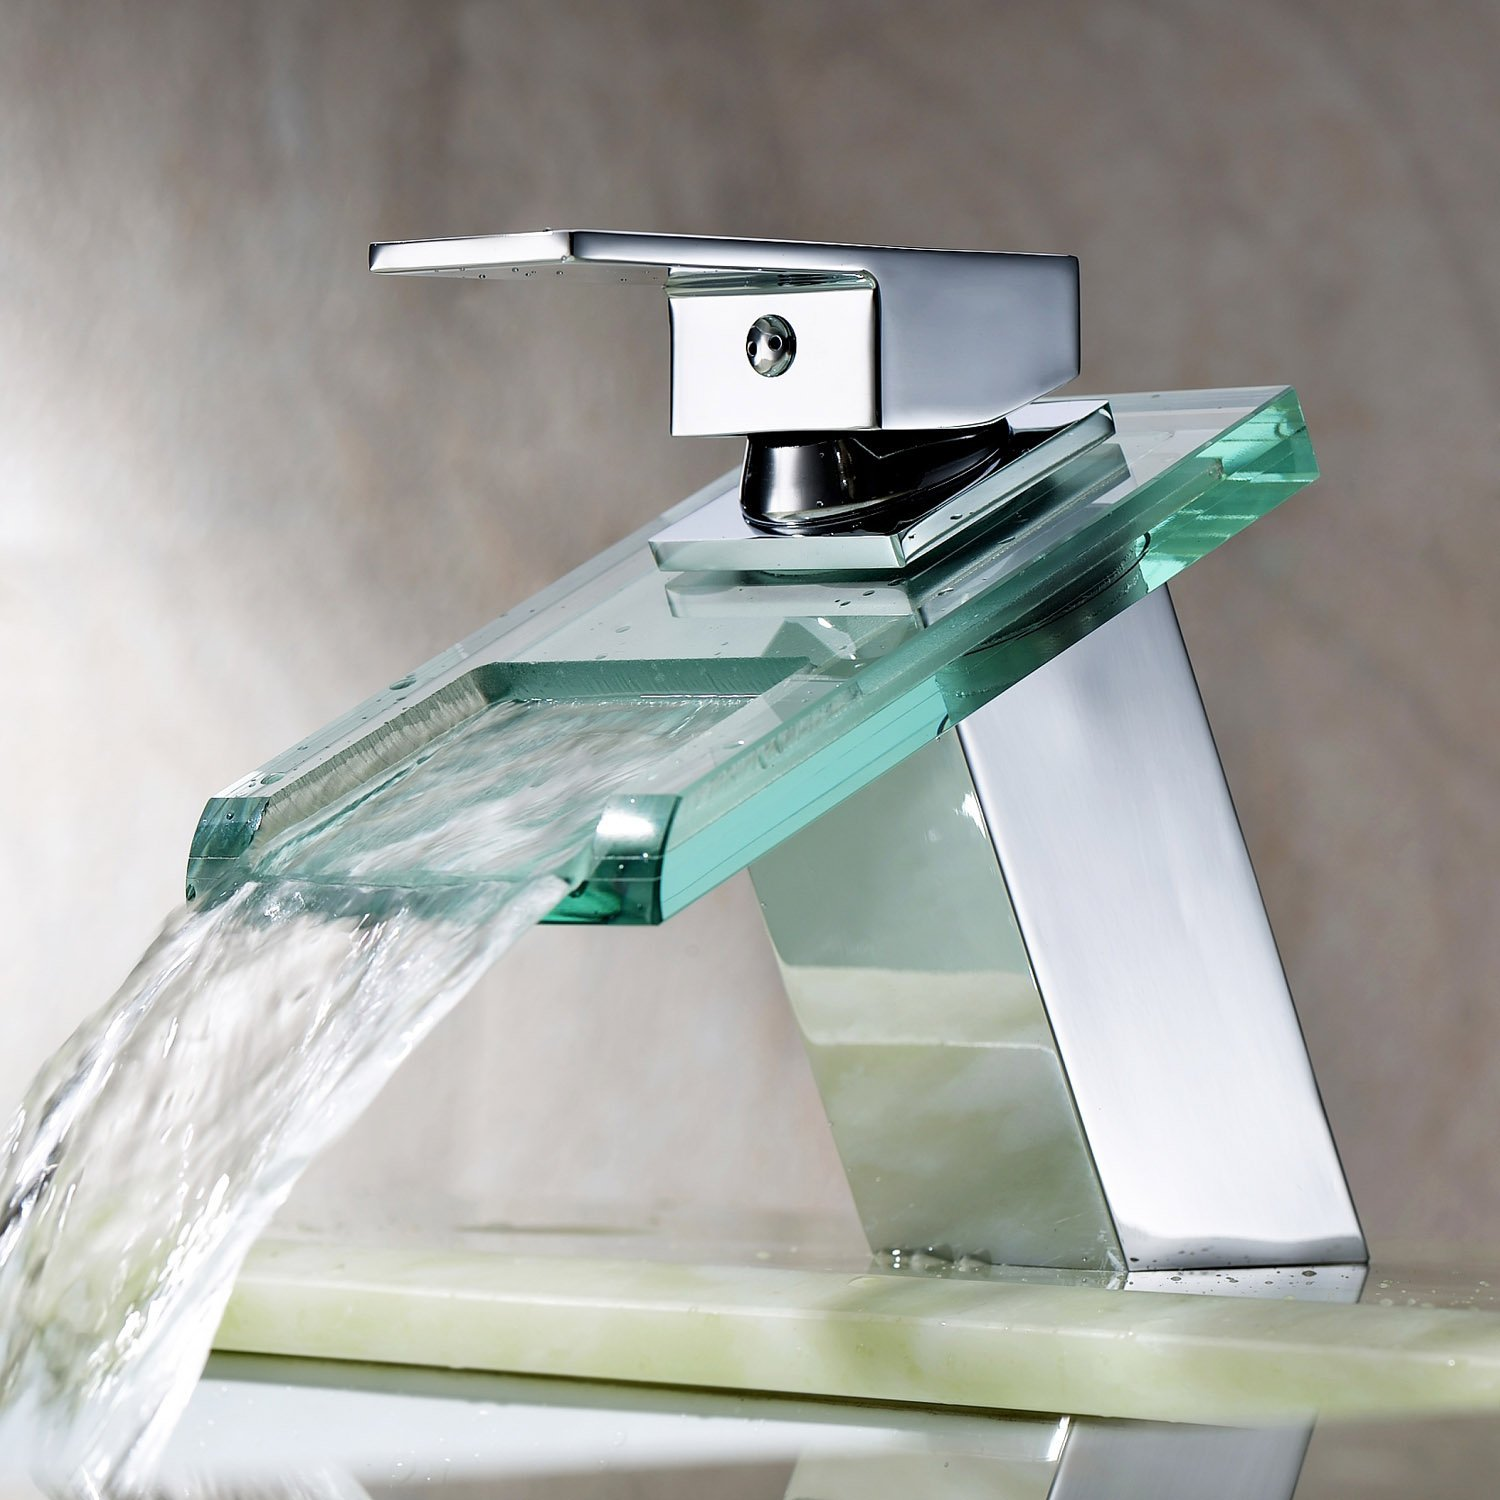 Faucets bathroom sink faucets modern contemporary waterfall basin faucet with single handle - Rubinetteria a cascata bagno ...